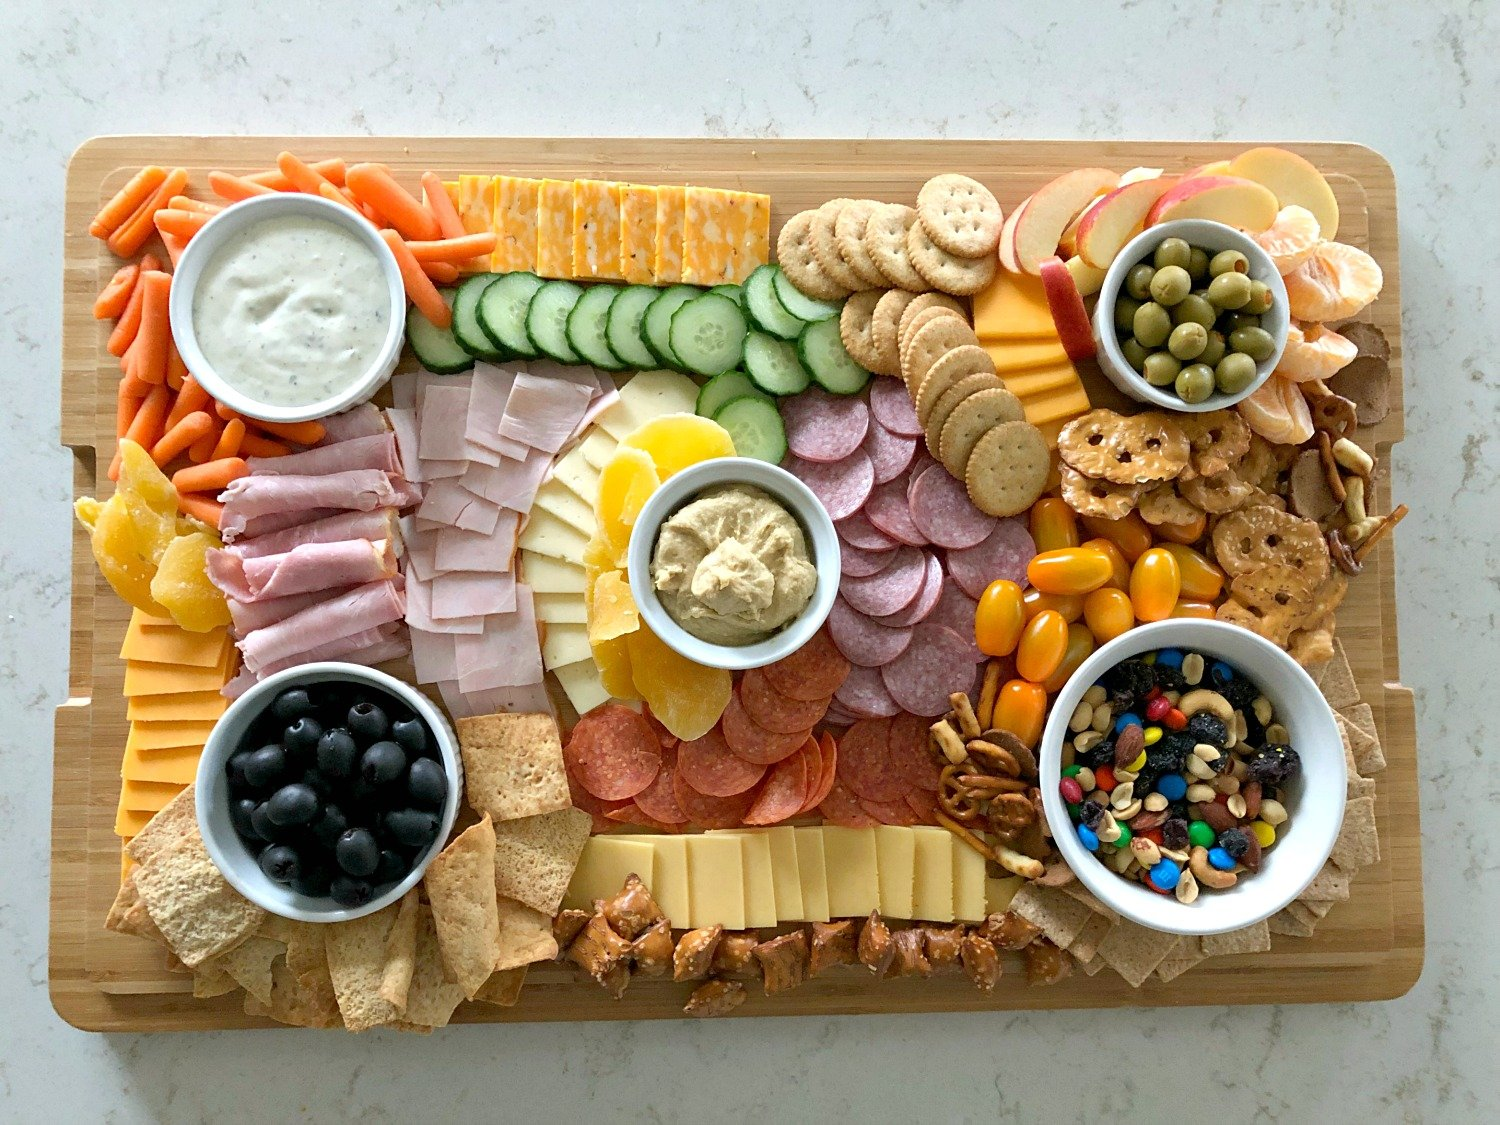 full charcuterie board with meats, cheese, olives, pretzels, pepperoni, fruits, and vegetables